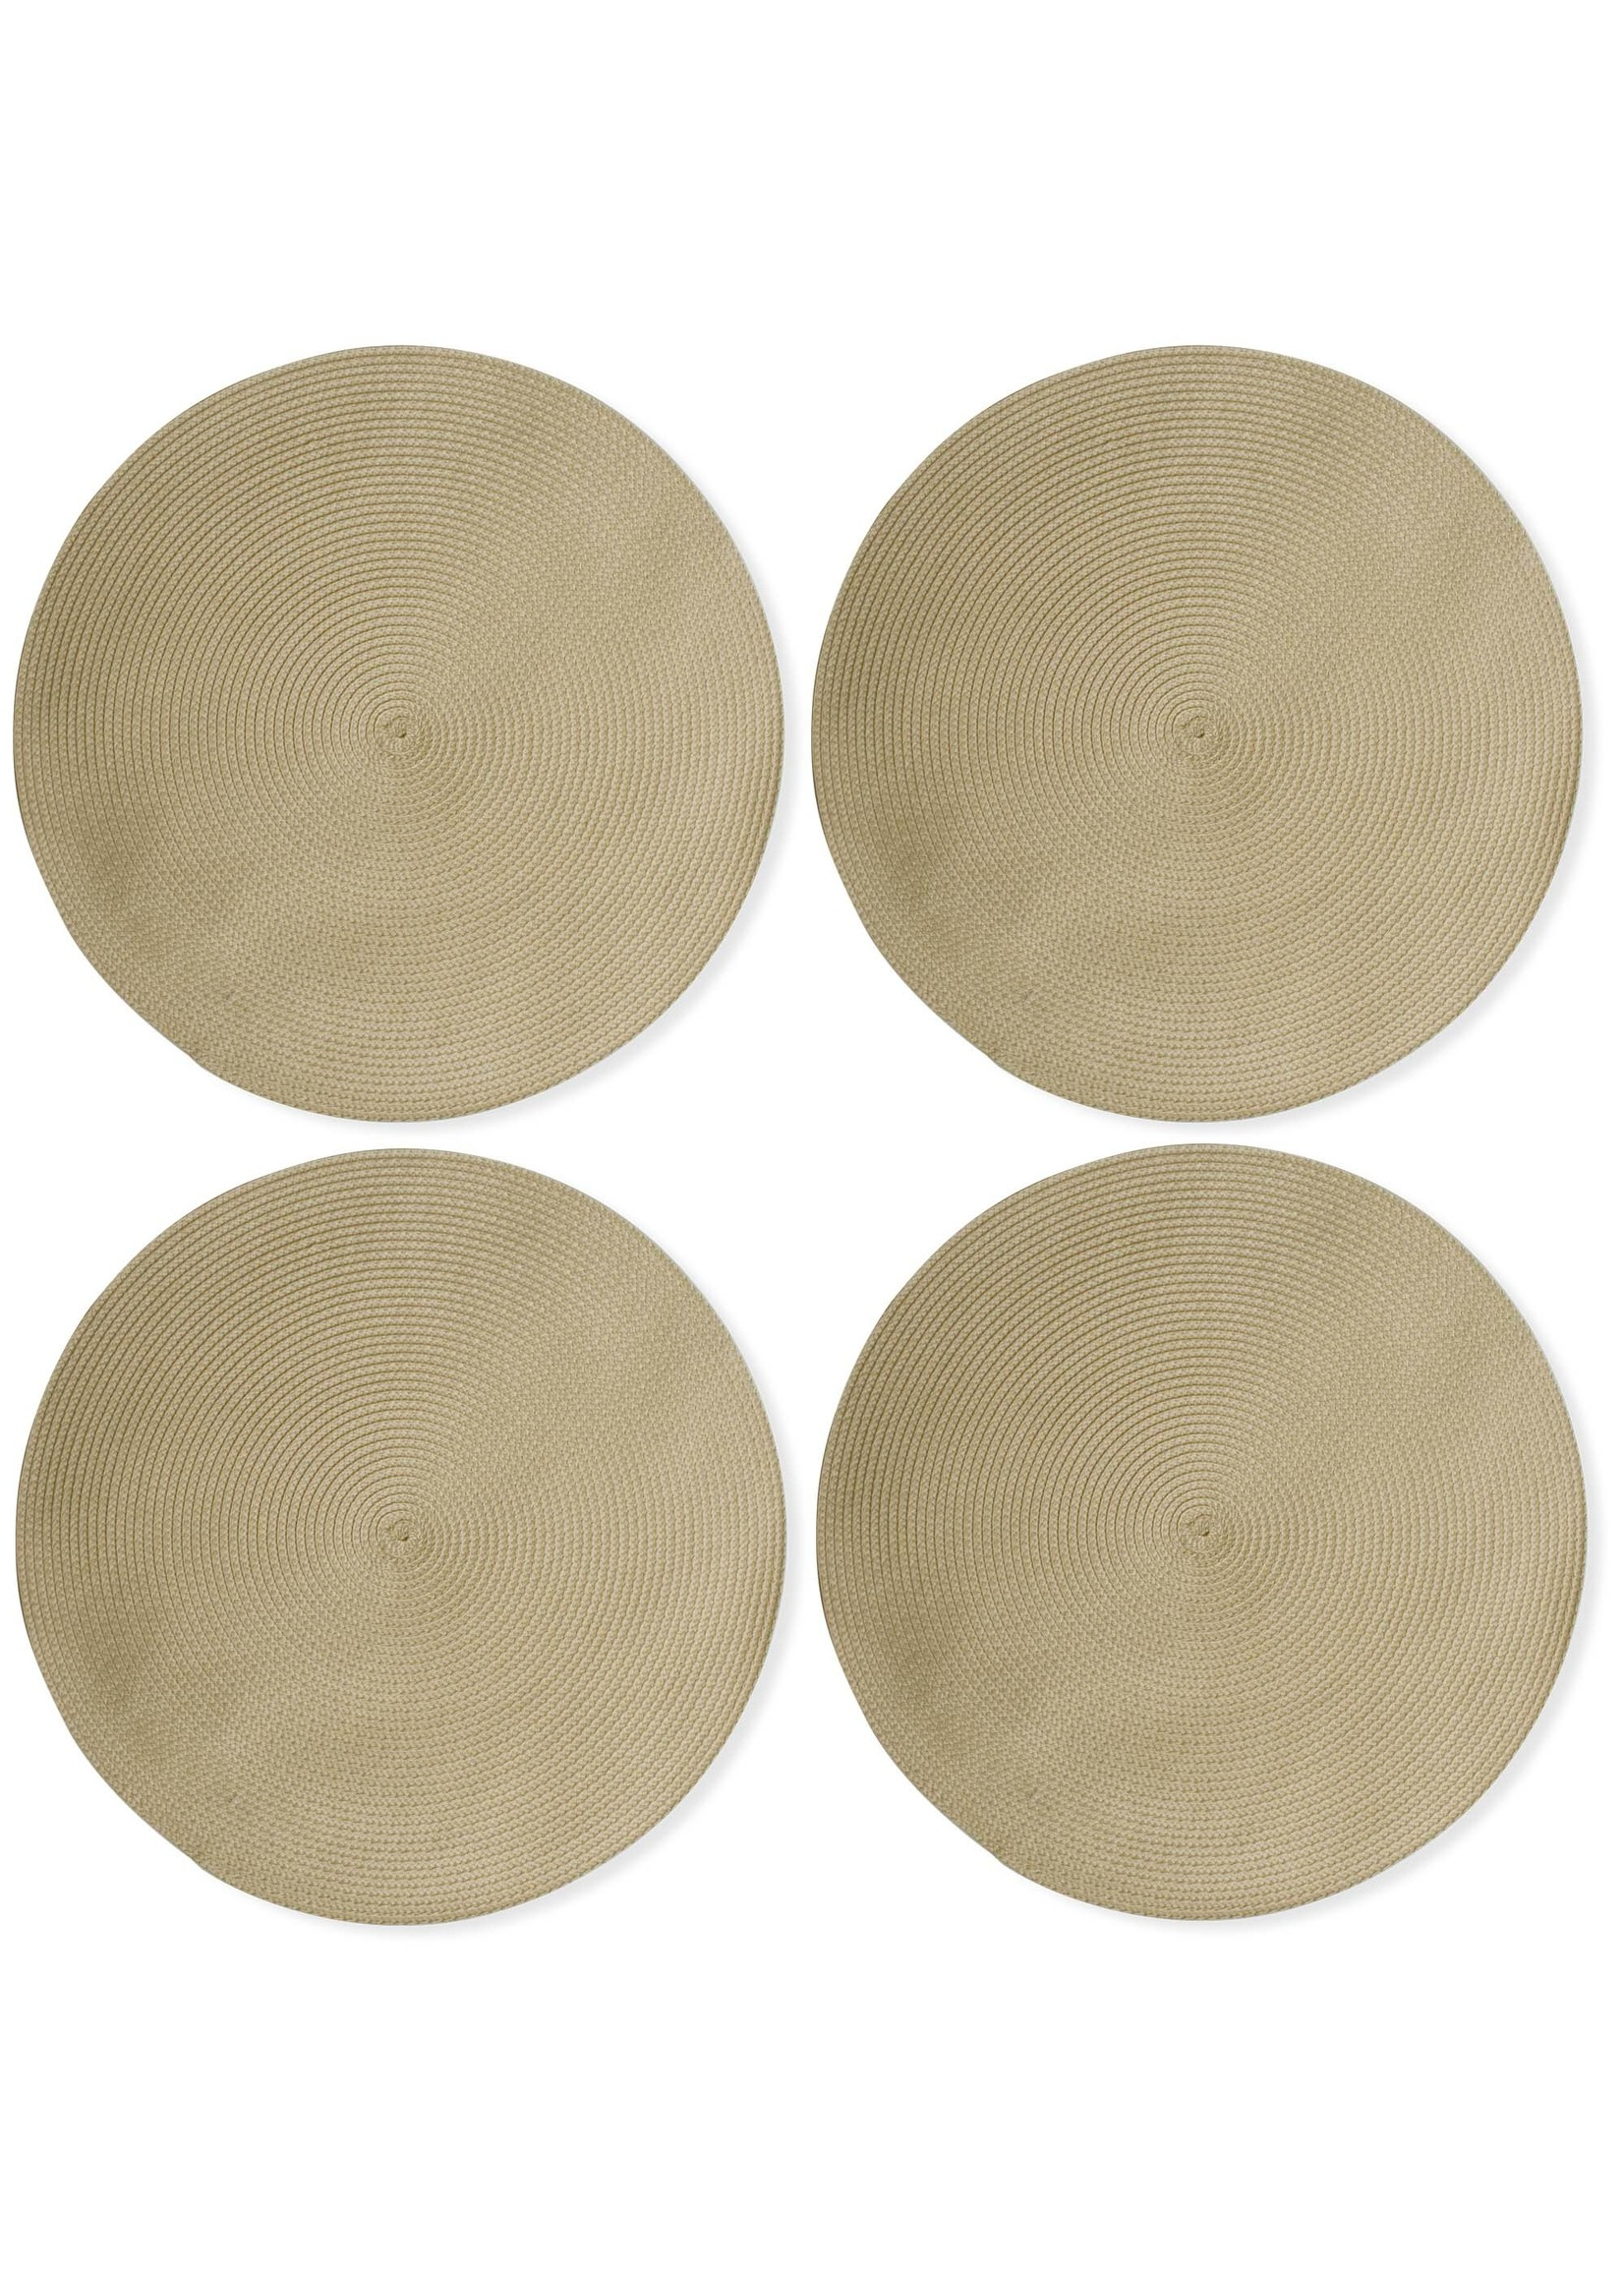 Tag Round Woven Placemats  - Natural